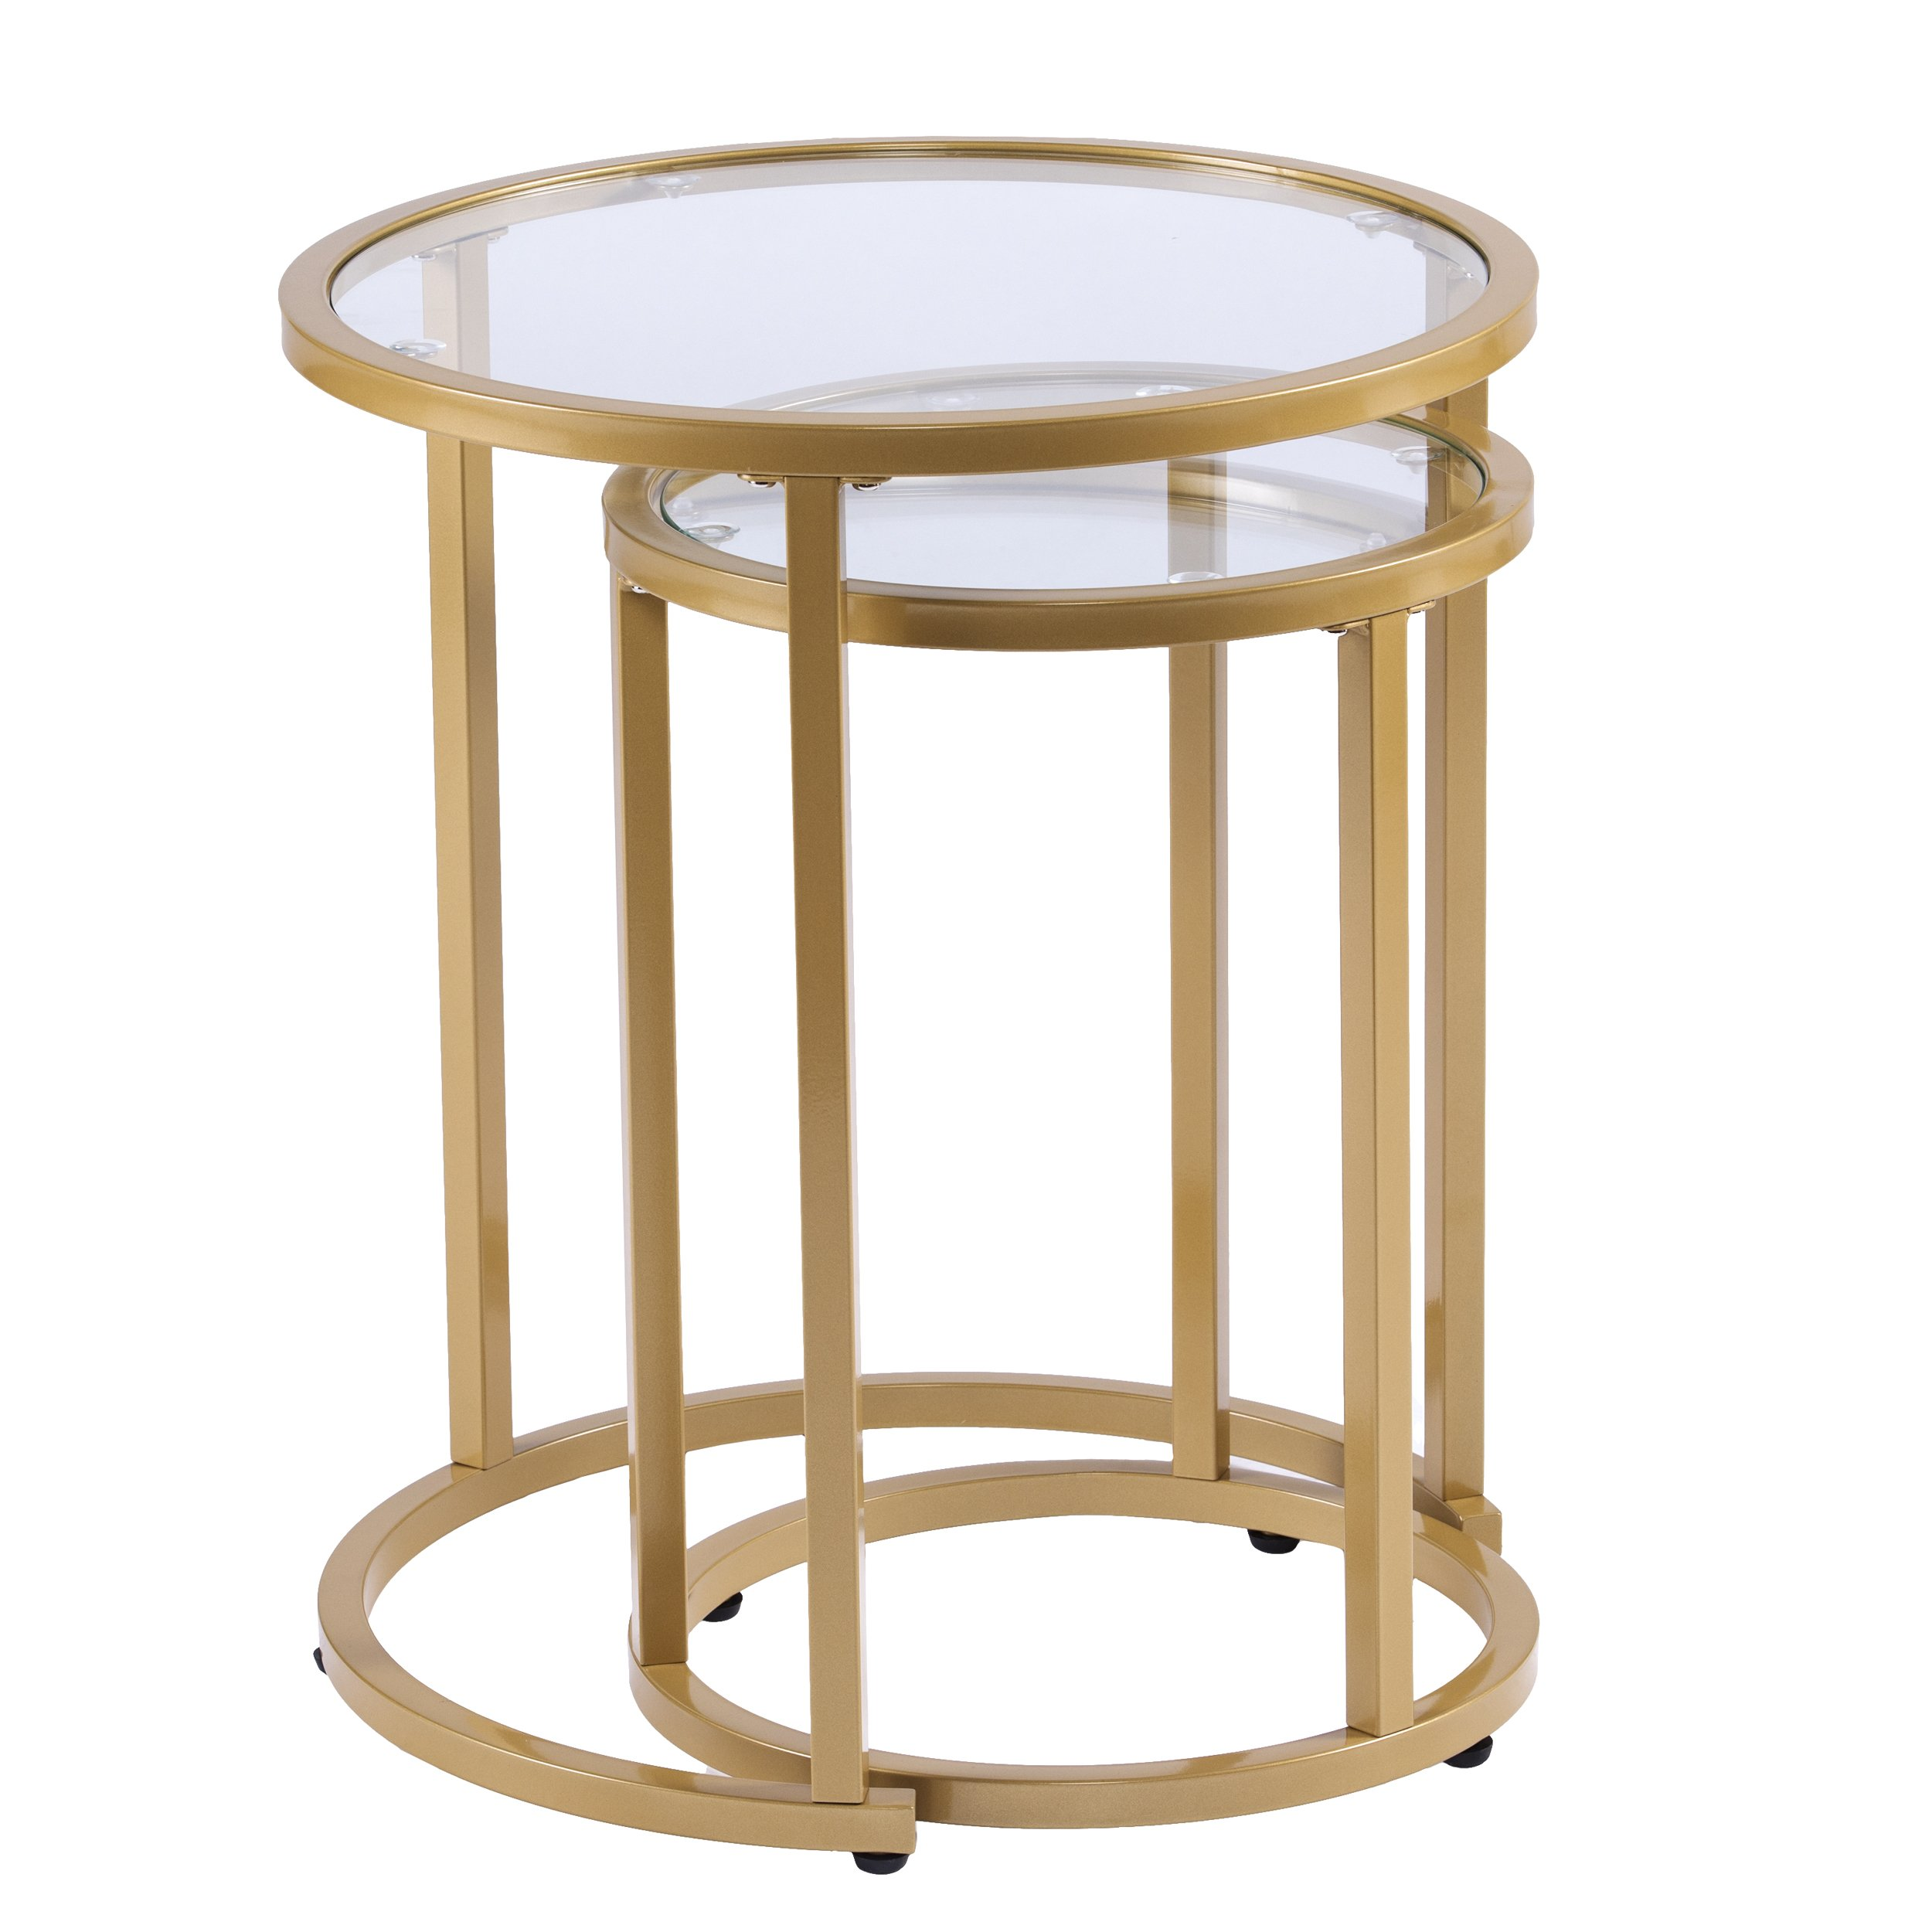 Furniture HotSpot Gold Metal Nesting End Tables - 2 Pcs Set - Round Space Saving Design by Furniture HotSpot